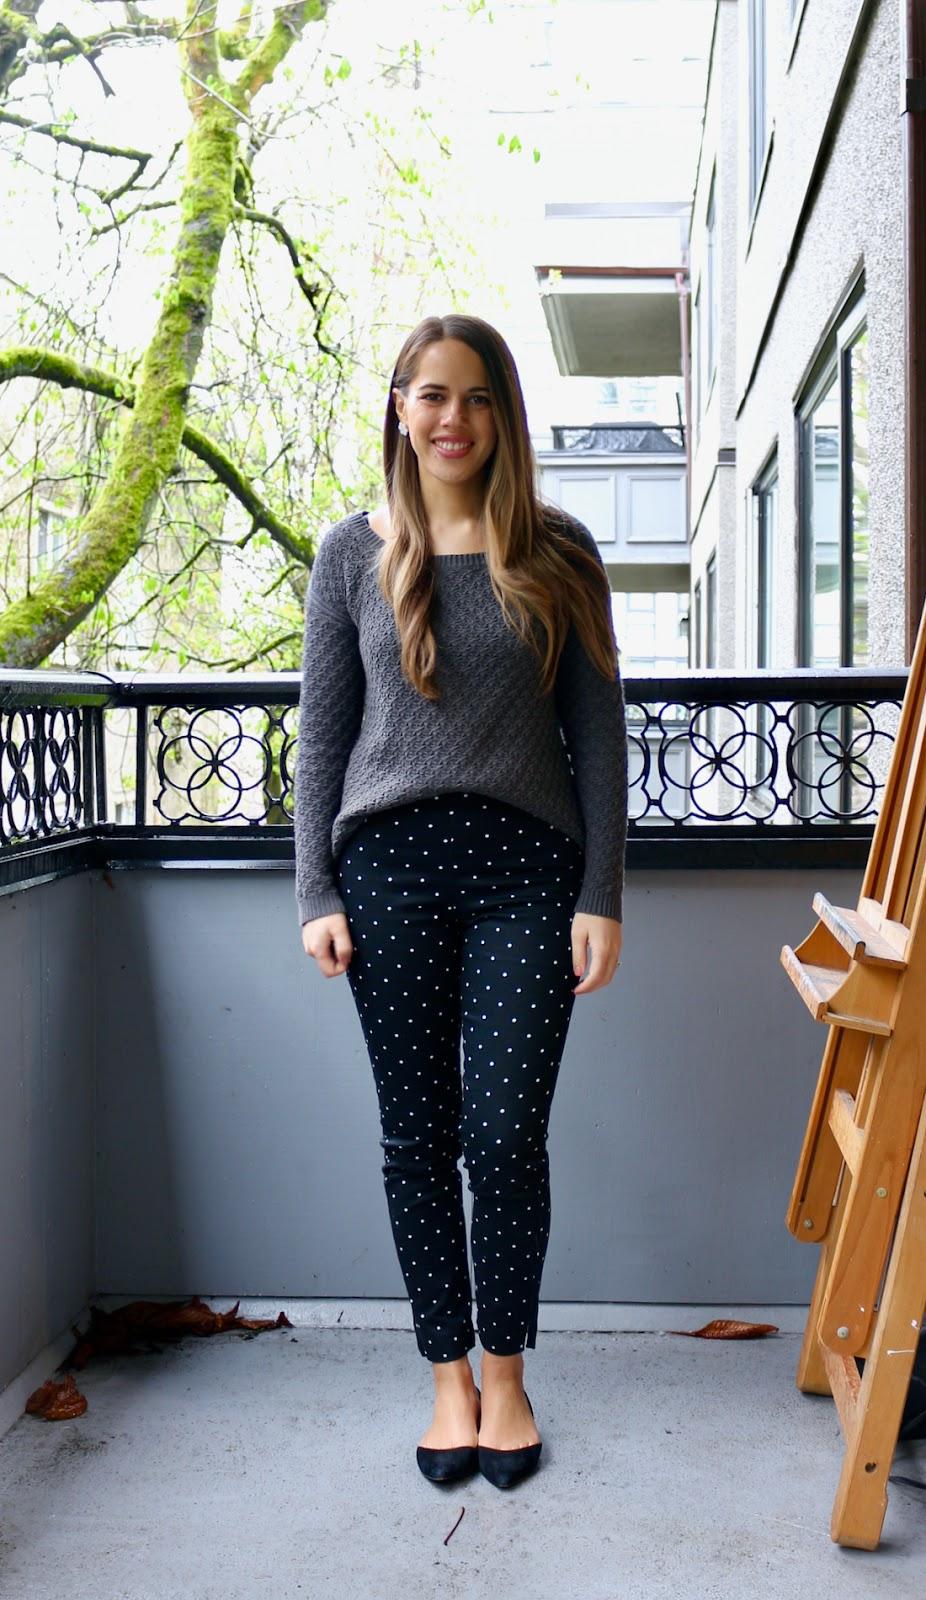 Jules in Flats - High Rise Skinny Ankle Pants with Knit Sweater (Business Casual Spring Workwear on a Budget)